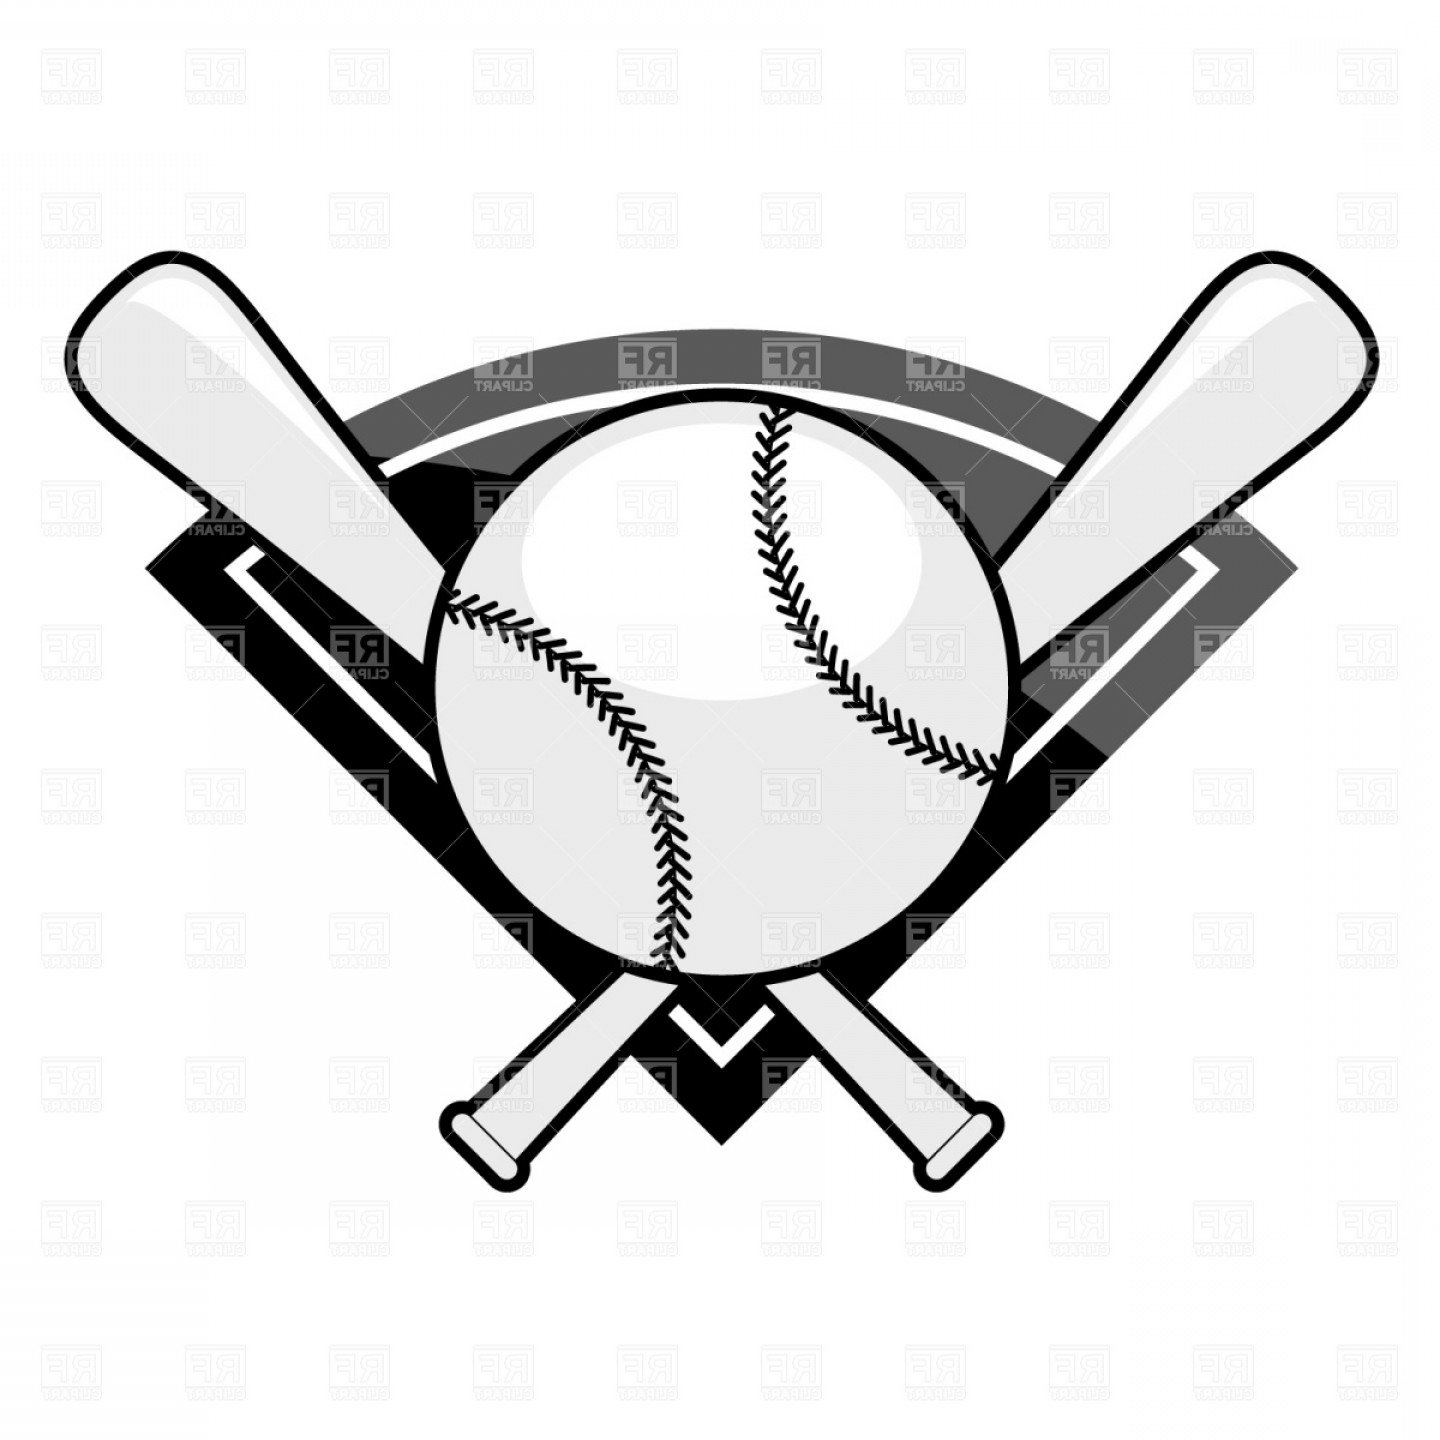 Black Diamond Vector Clip Art: Baseball Emblem Bat And Ball Vector Clipart